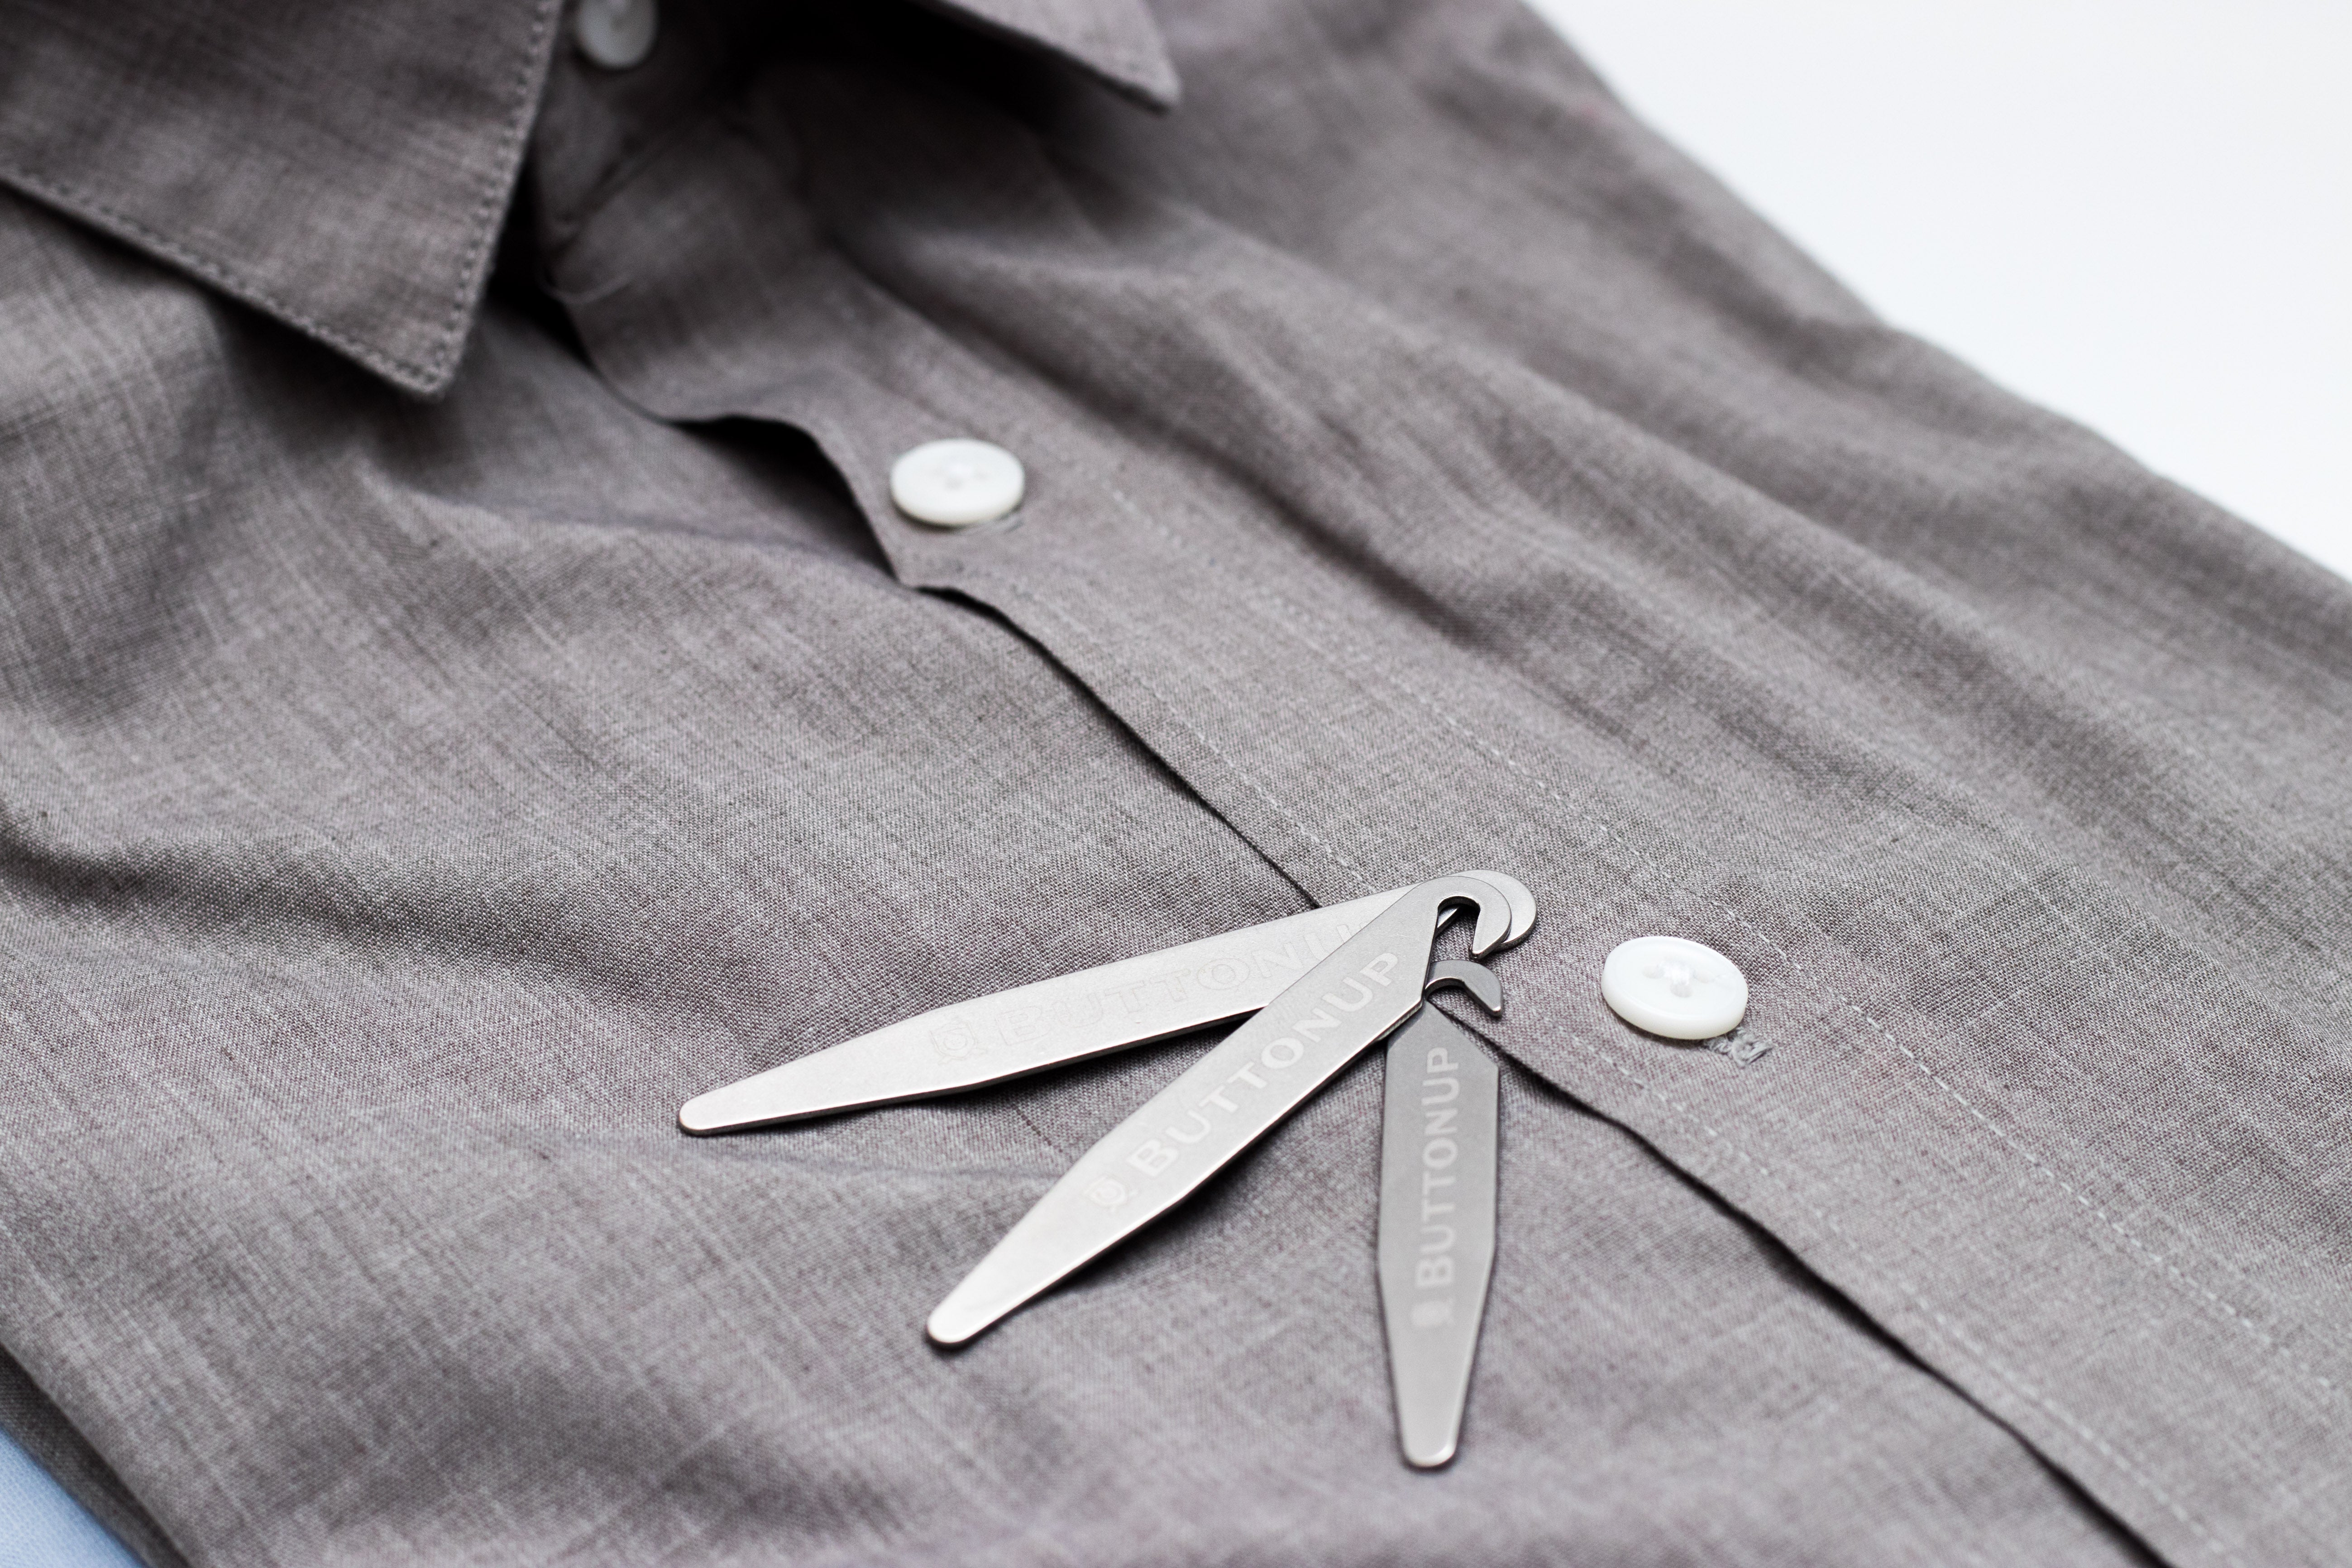 6 pc - ButtonUp Collar Stays Stainless Steel Pack